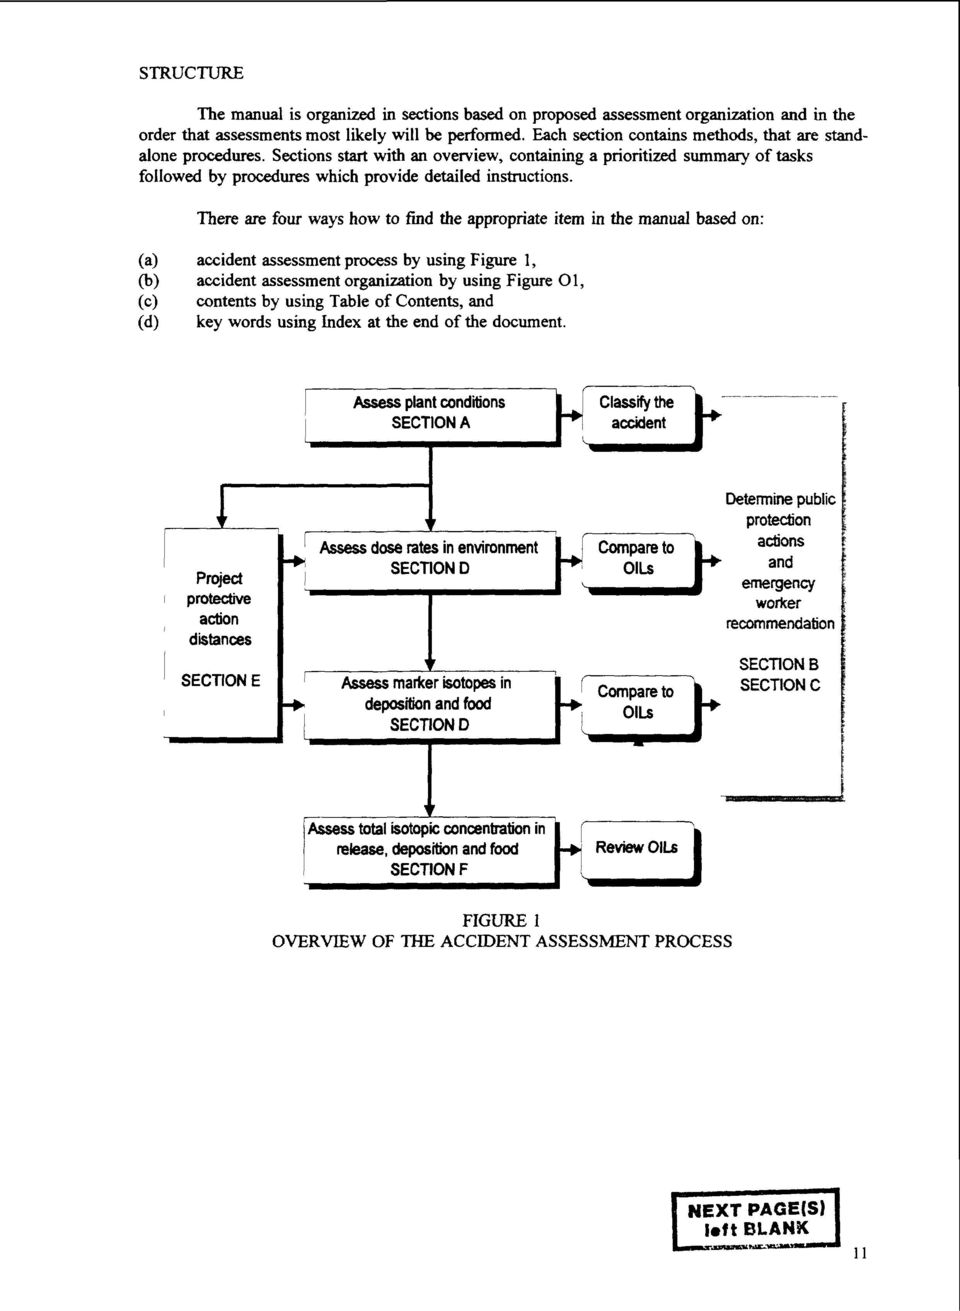 Generic assessment procedures for determining protective